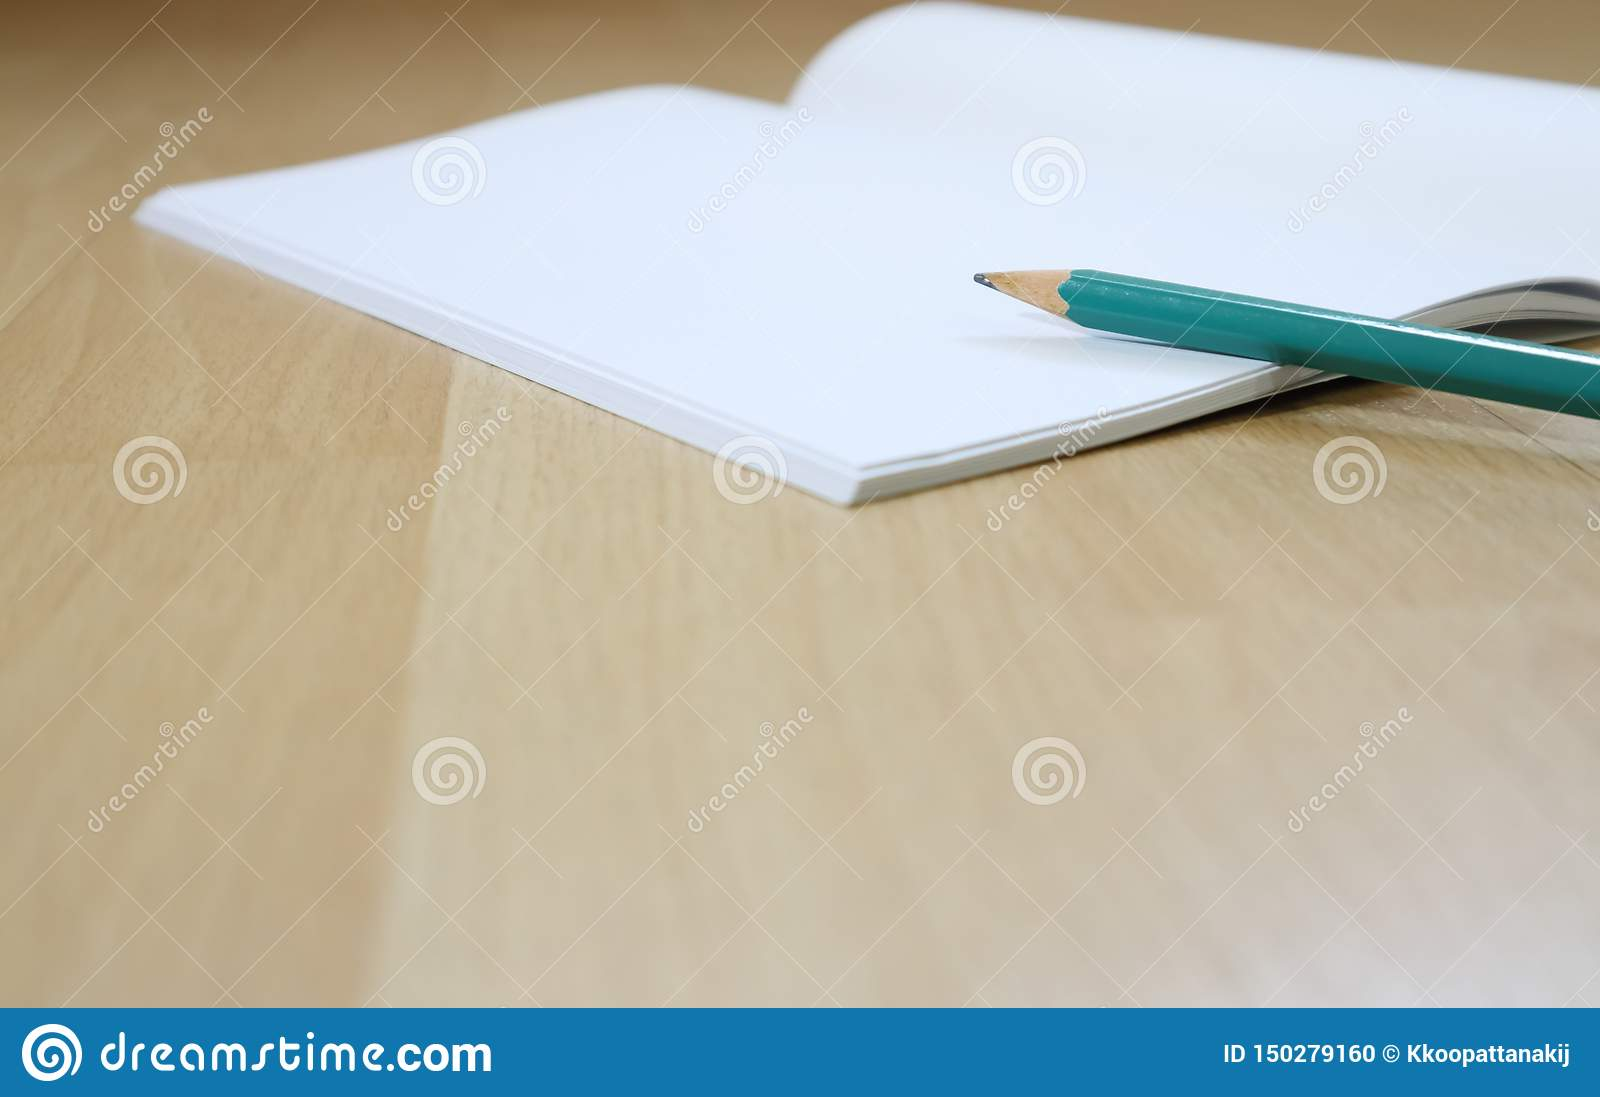 Notebook and pen cil on the wooden floor